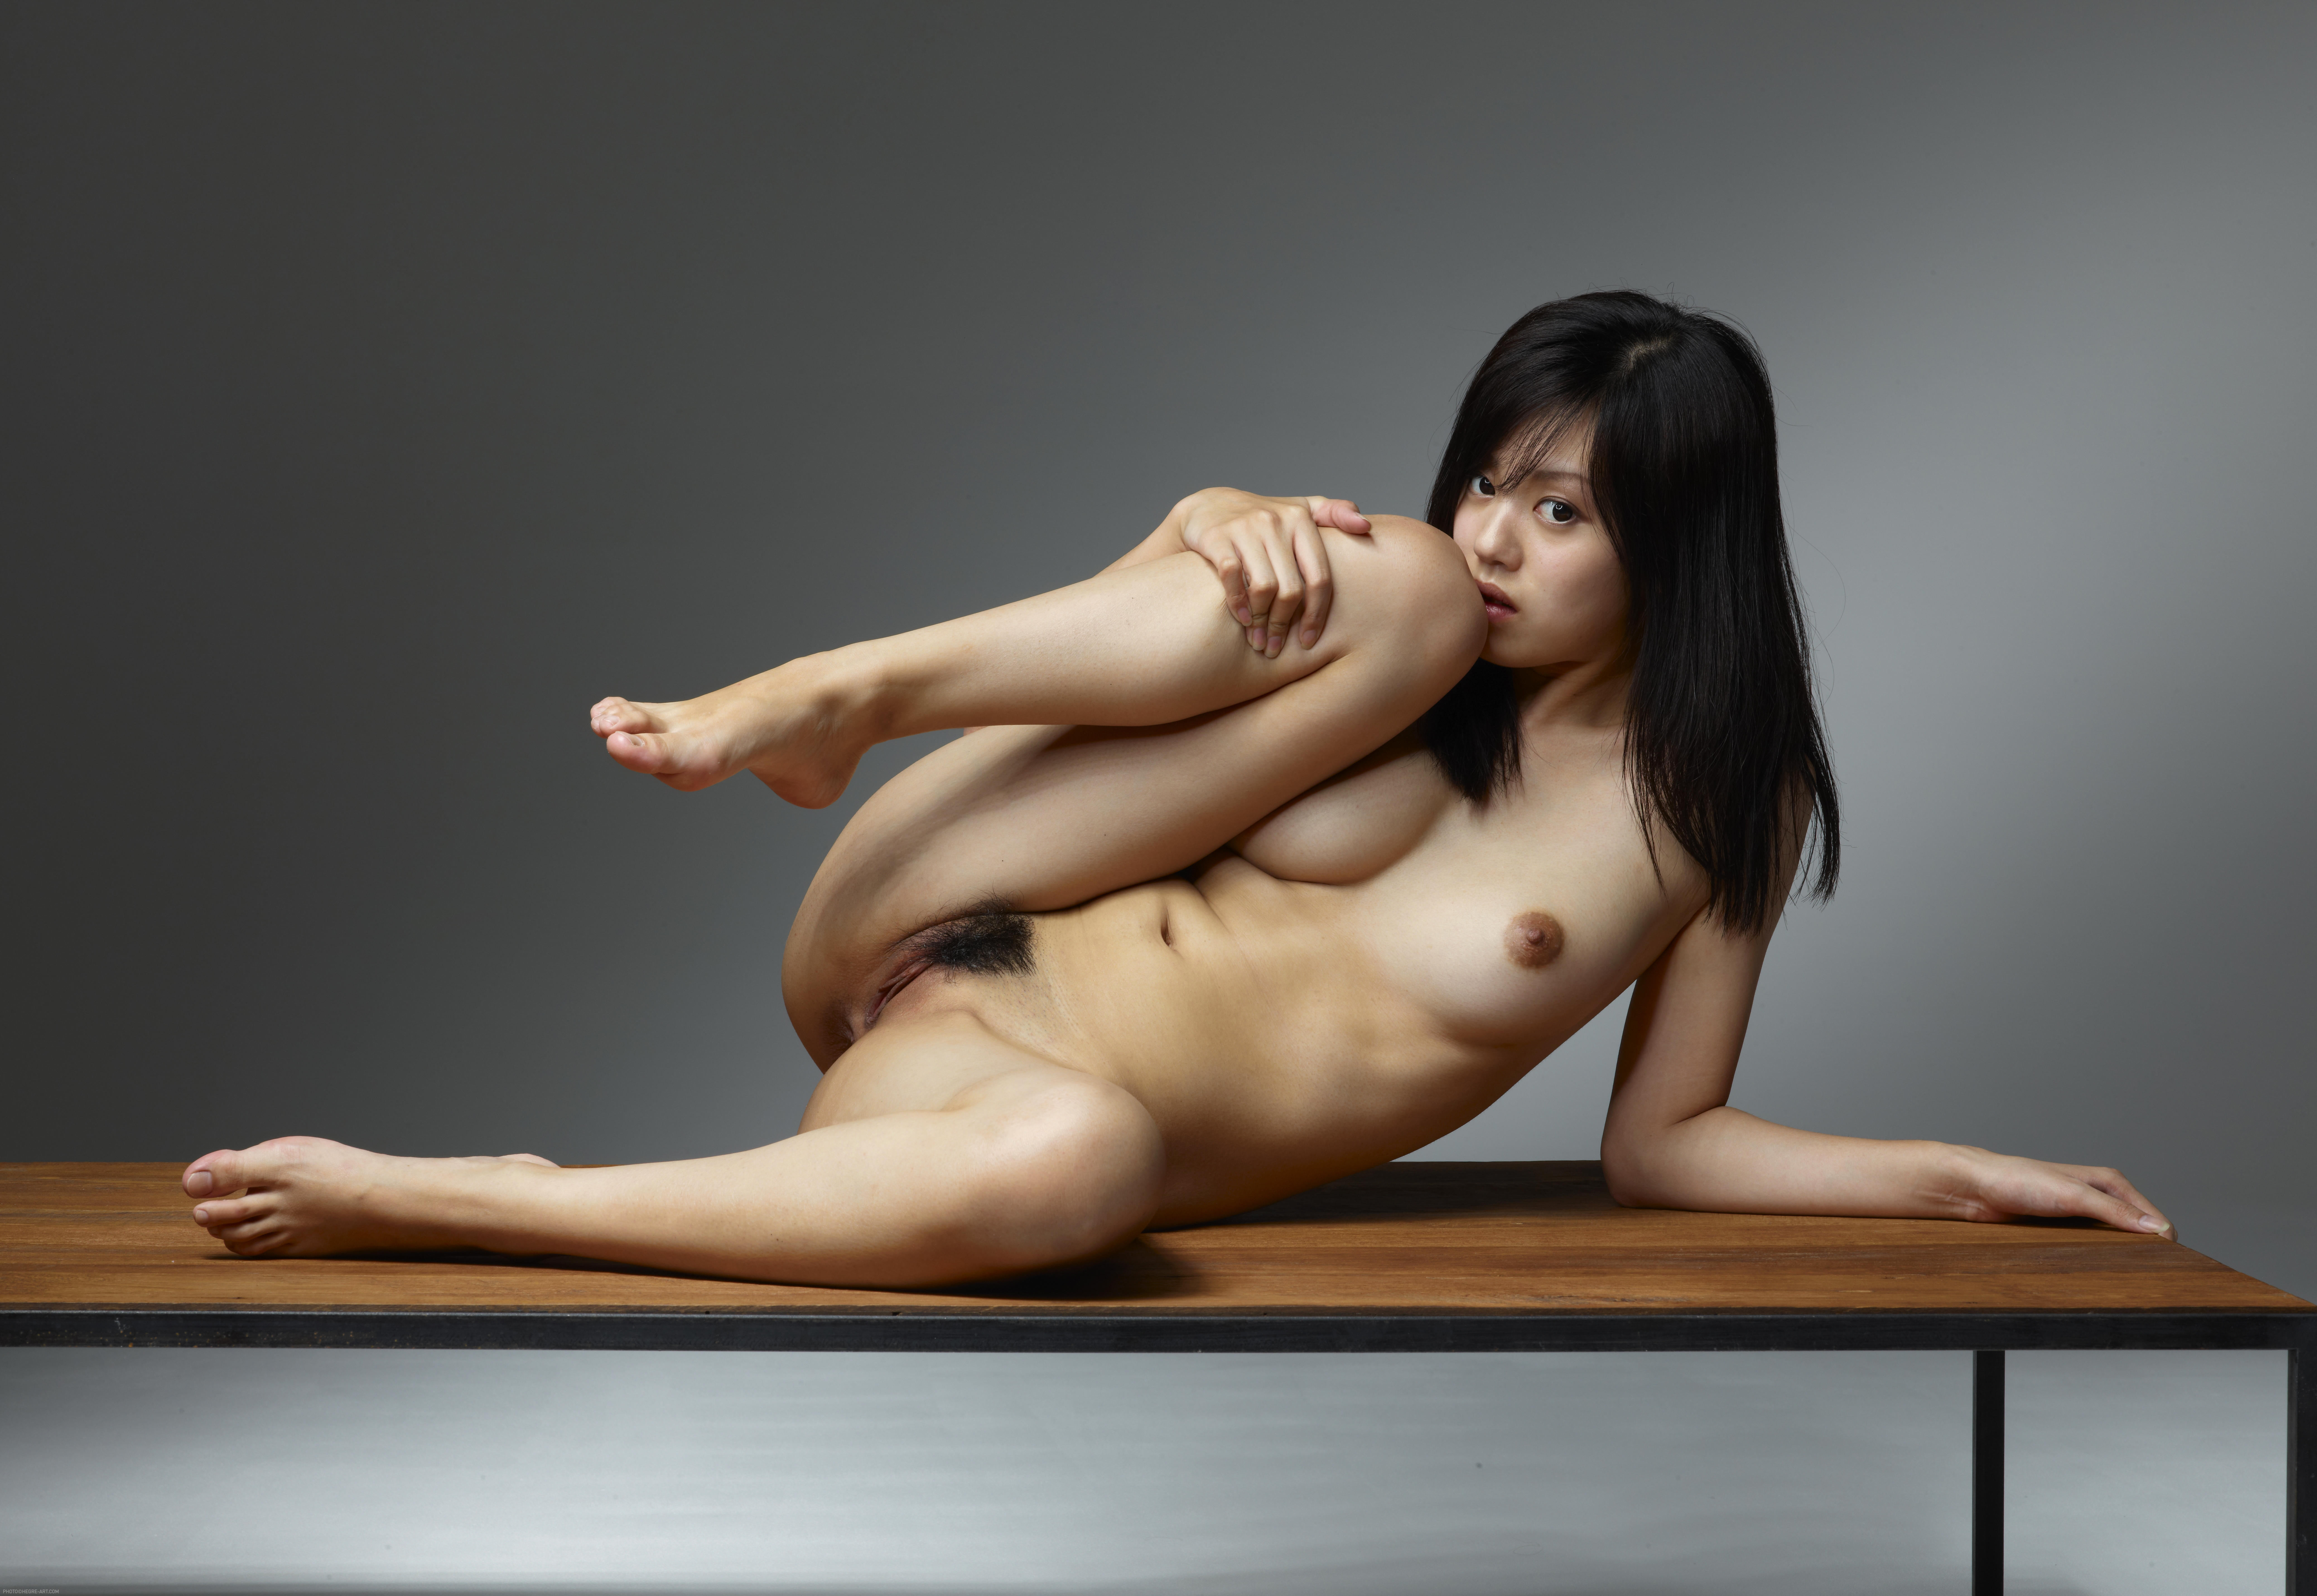 Asian on table nude